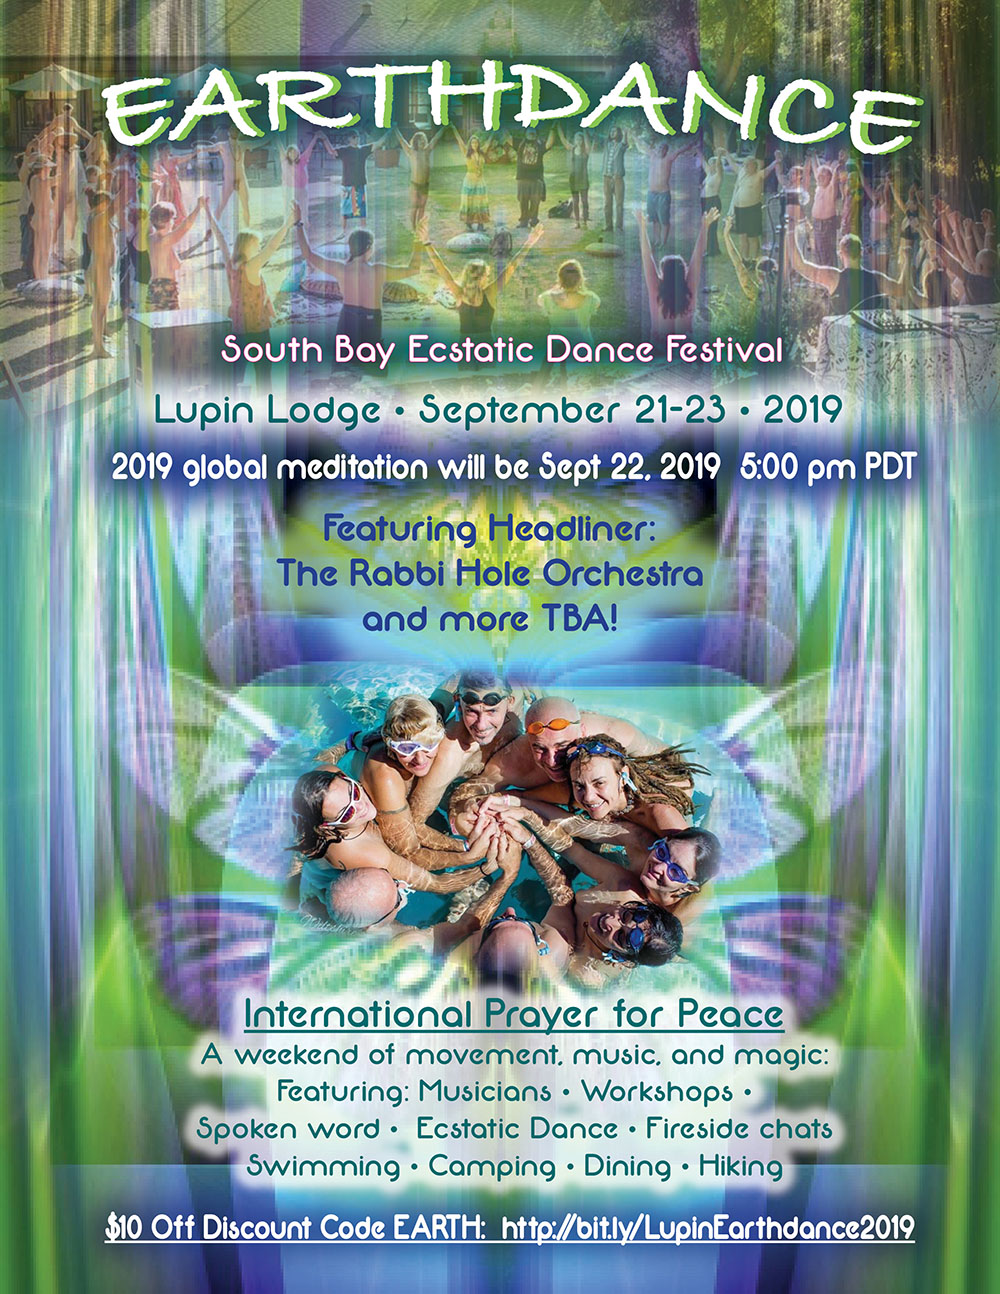 Earthdance 2019 at Lupin